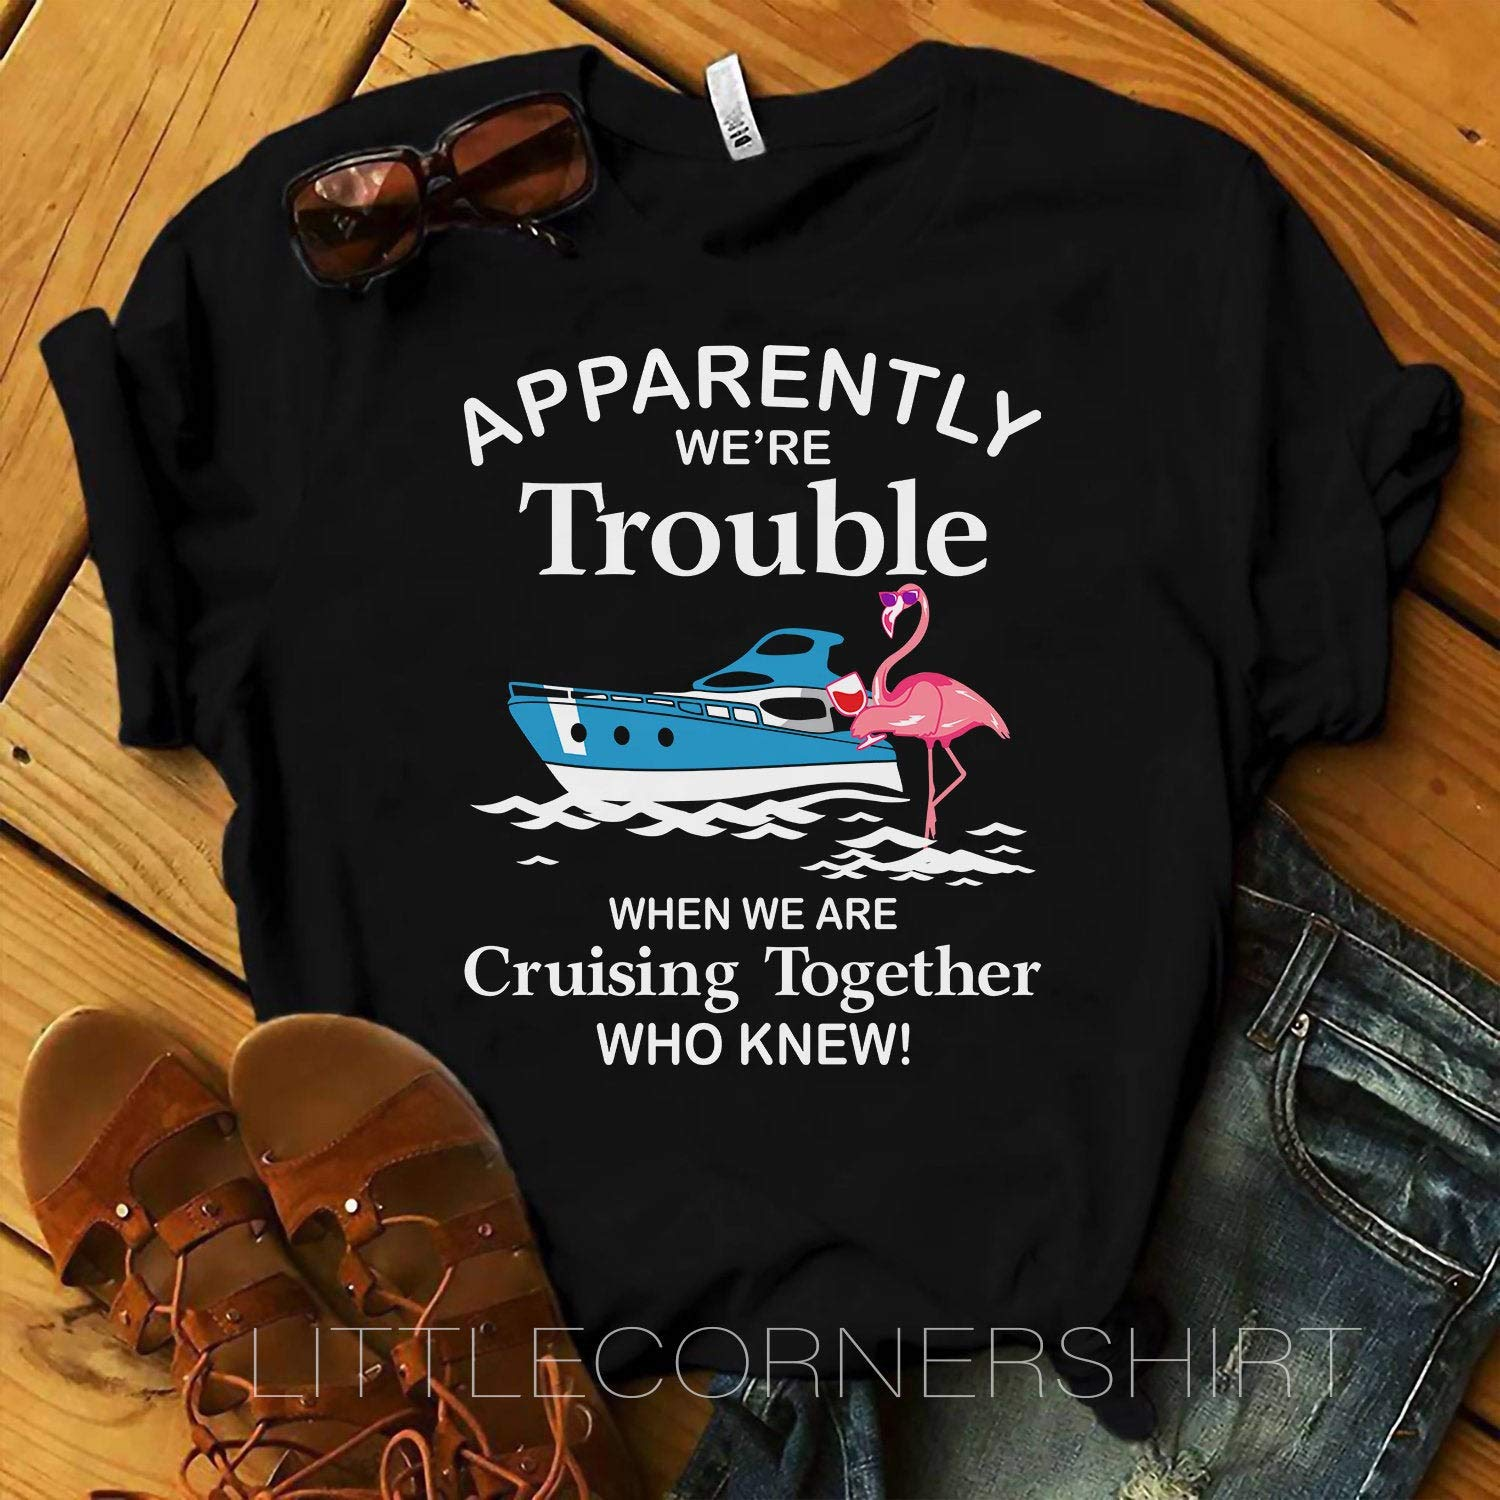 Apparently Were Trouble When We Are Cruising Together Who Knew Flamingo Tshirt Cruise Shir